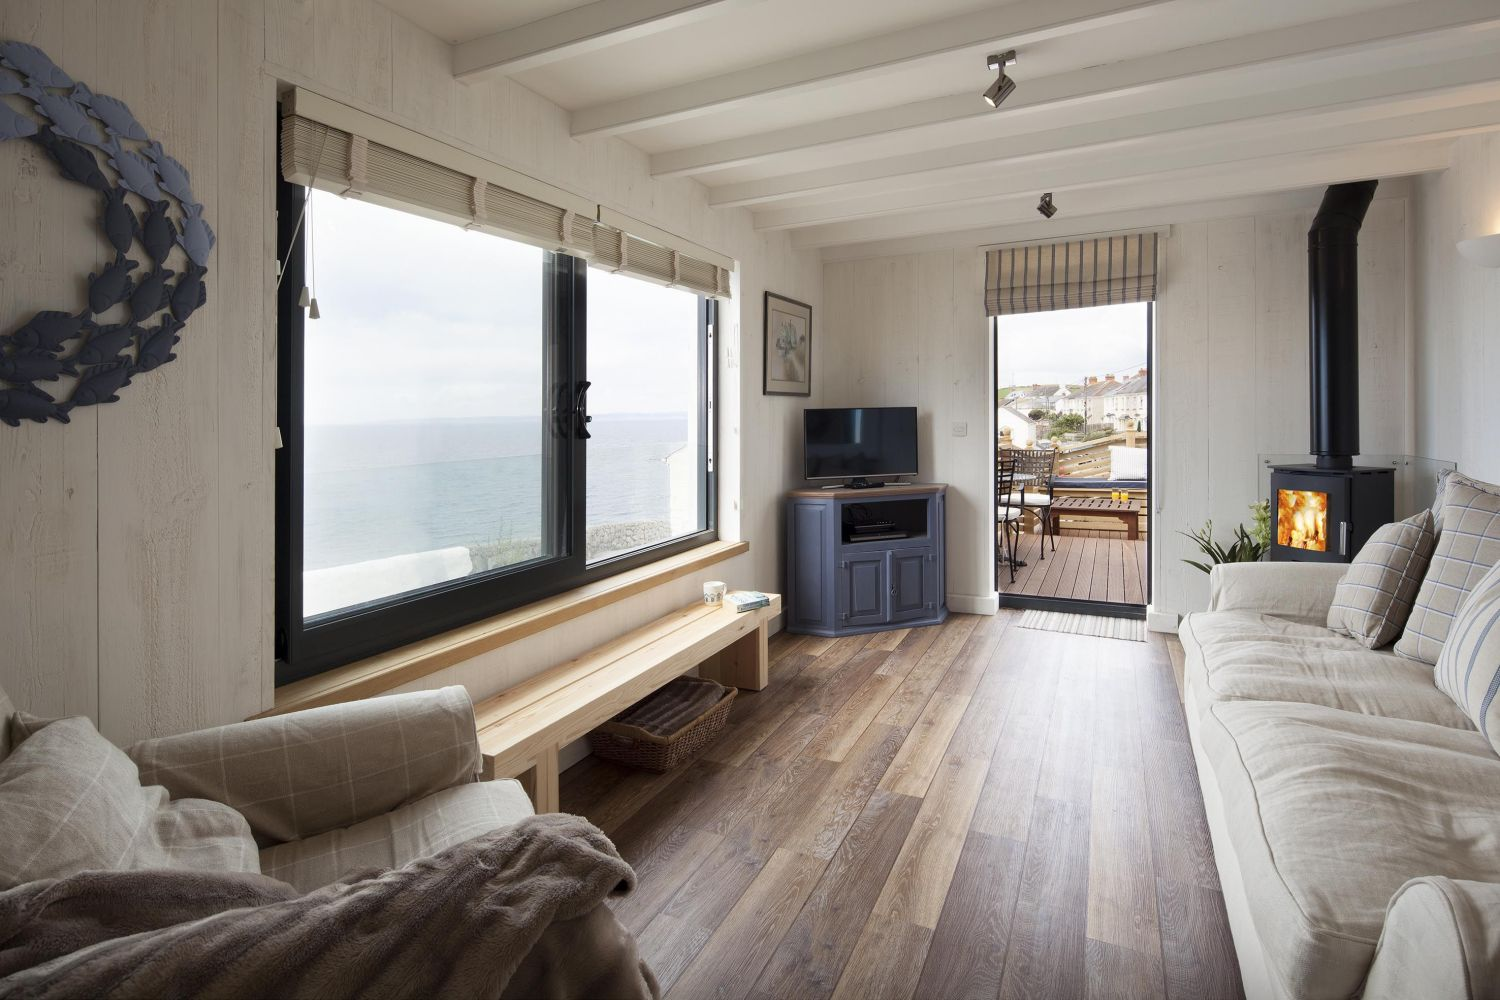 Gull's Way - Porthleven Holiday Cottages